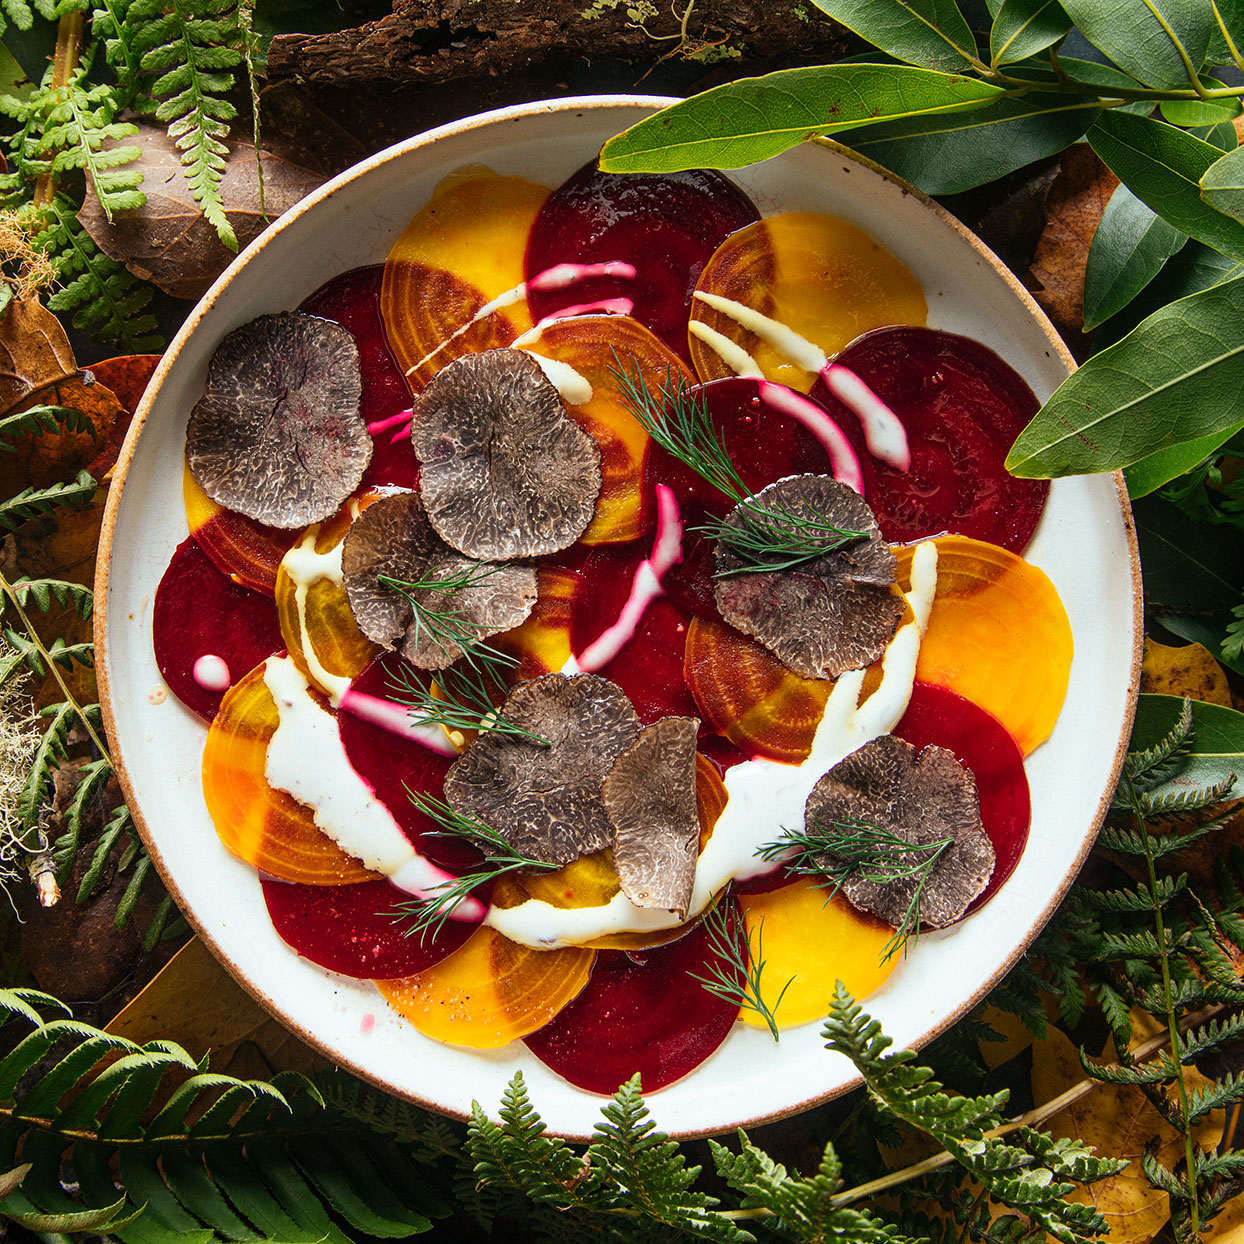 Put a vegetarian spin on this classic Italian dish. Thin slices of beet, glossy with olive oil, make this salad look like beef carpaccio, especially if you use red beets.Source: EatingWell Magazine, April 2020